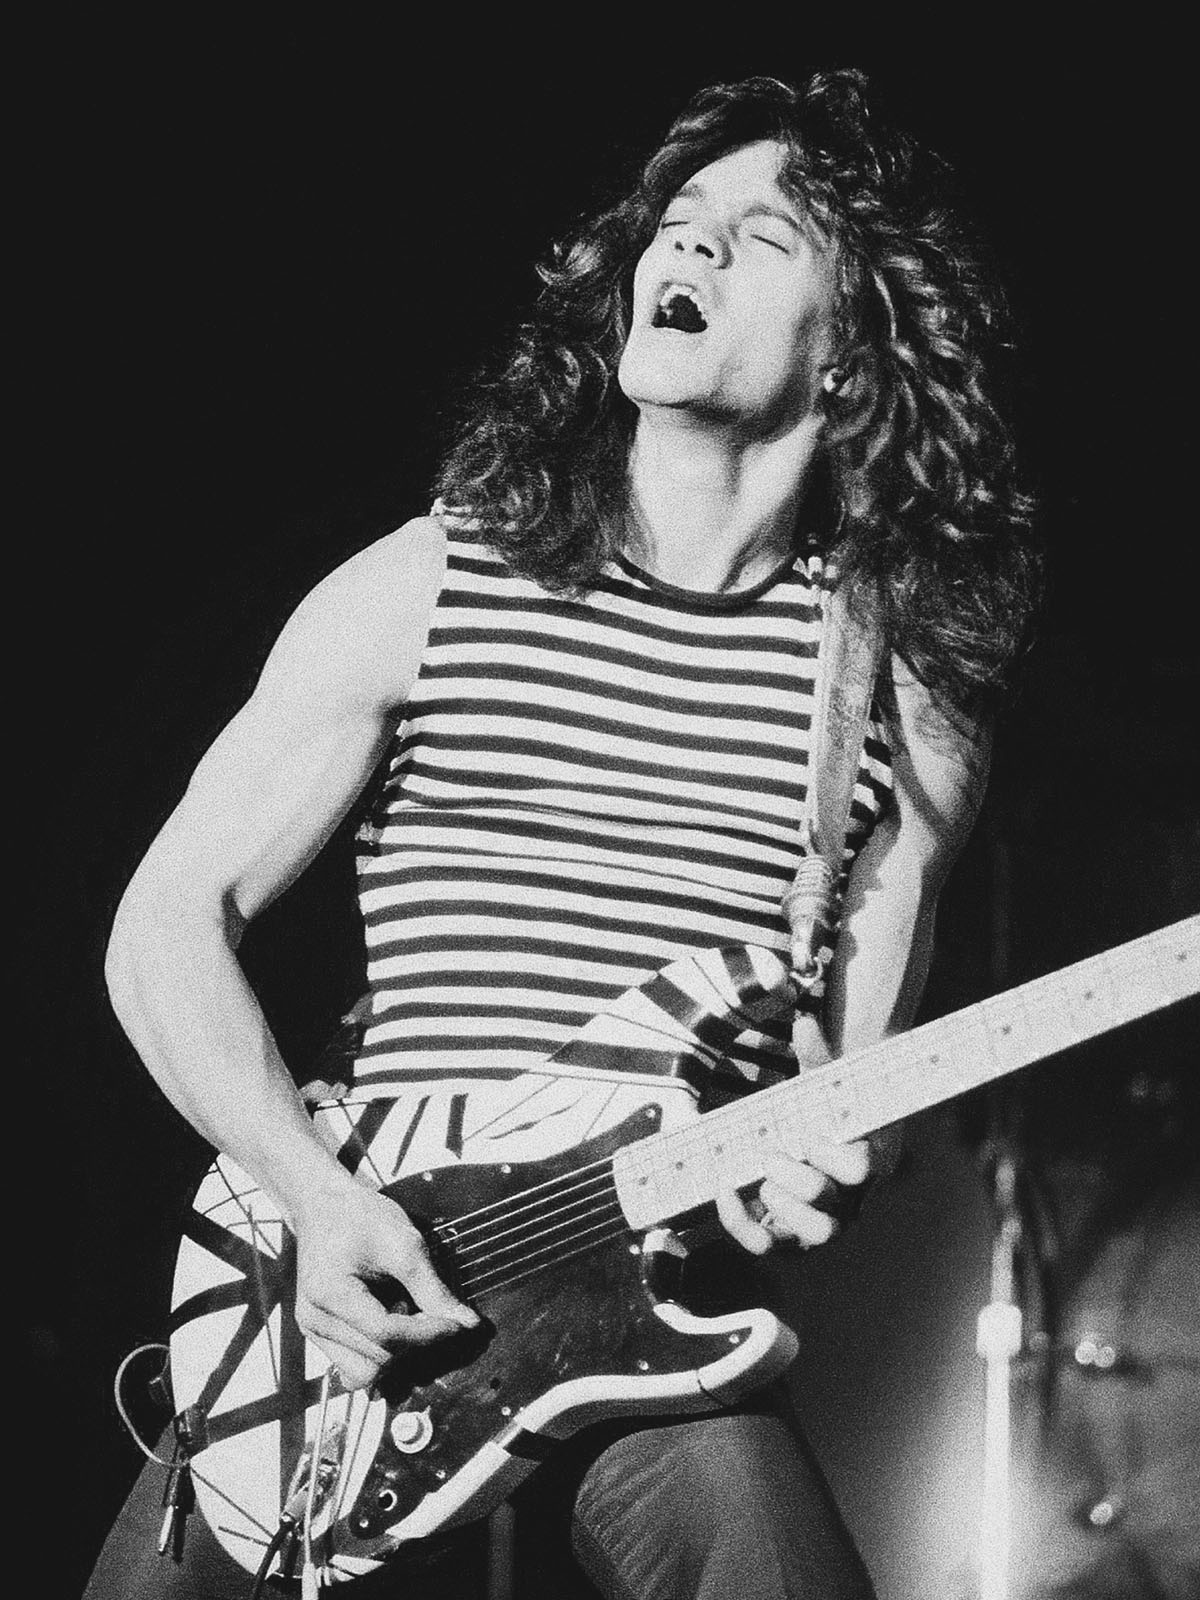 Eddie Van Halen, the guitar god who boosted hard rock into a neon future